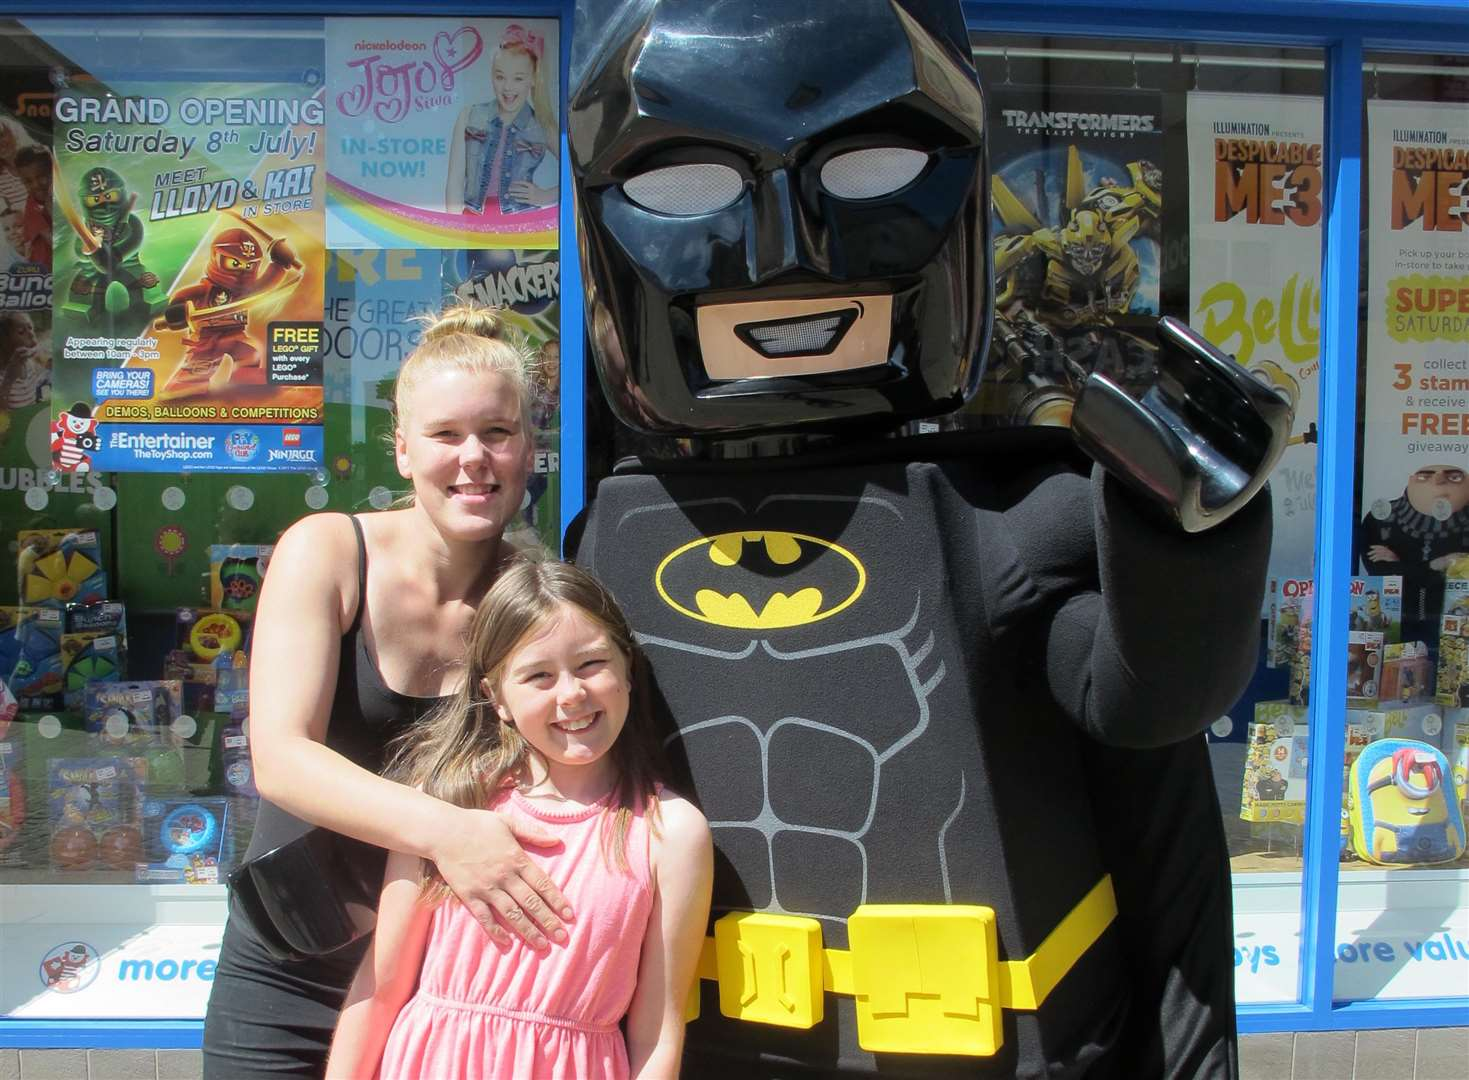 LEGO Batman will be meeting customers this Saturday